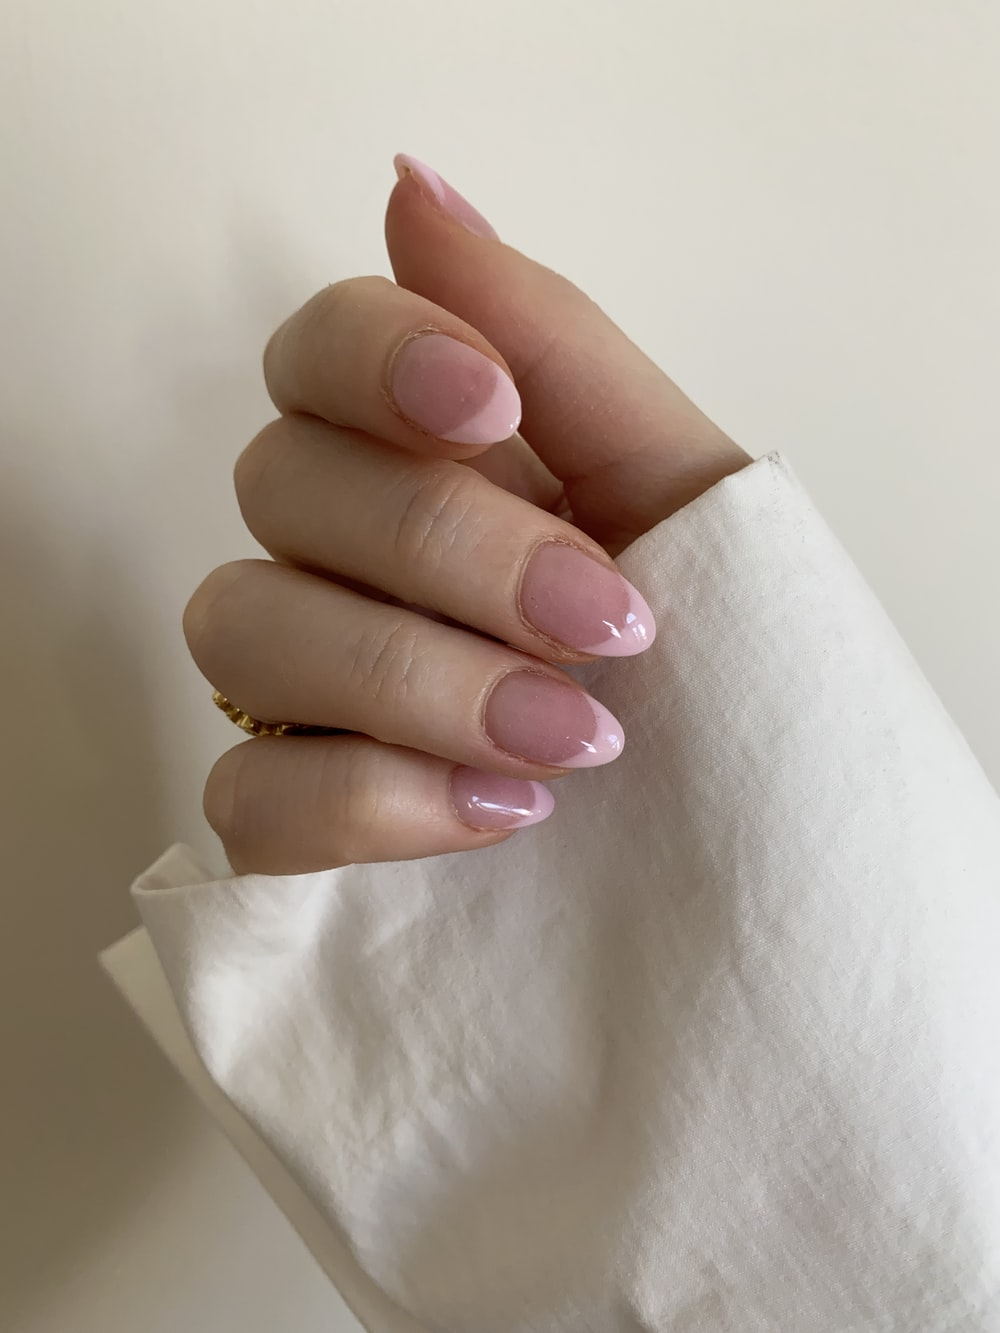 person with pink manicure on white textile